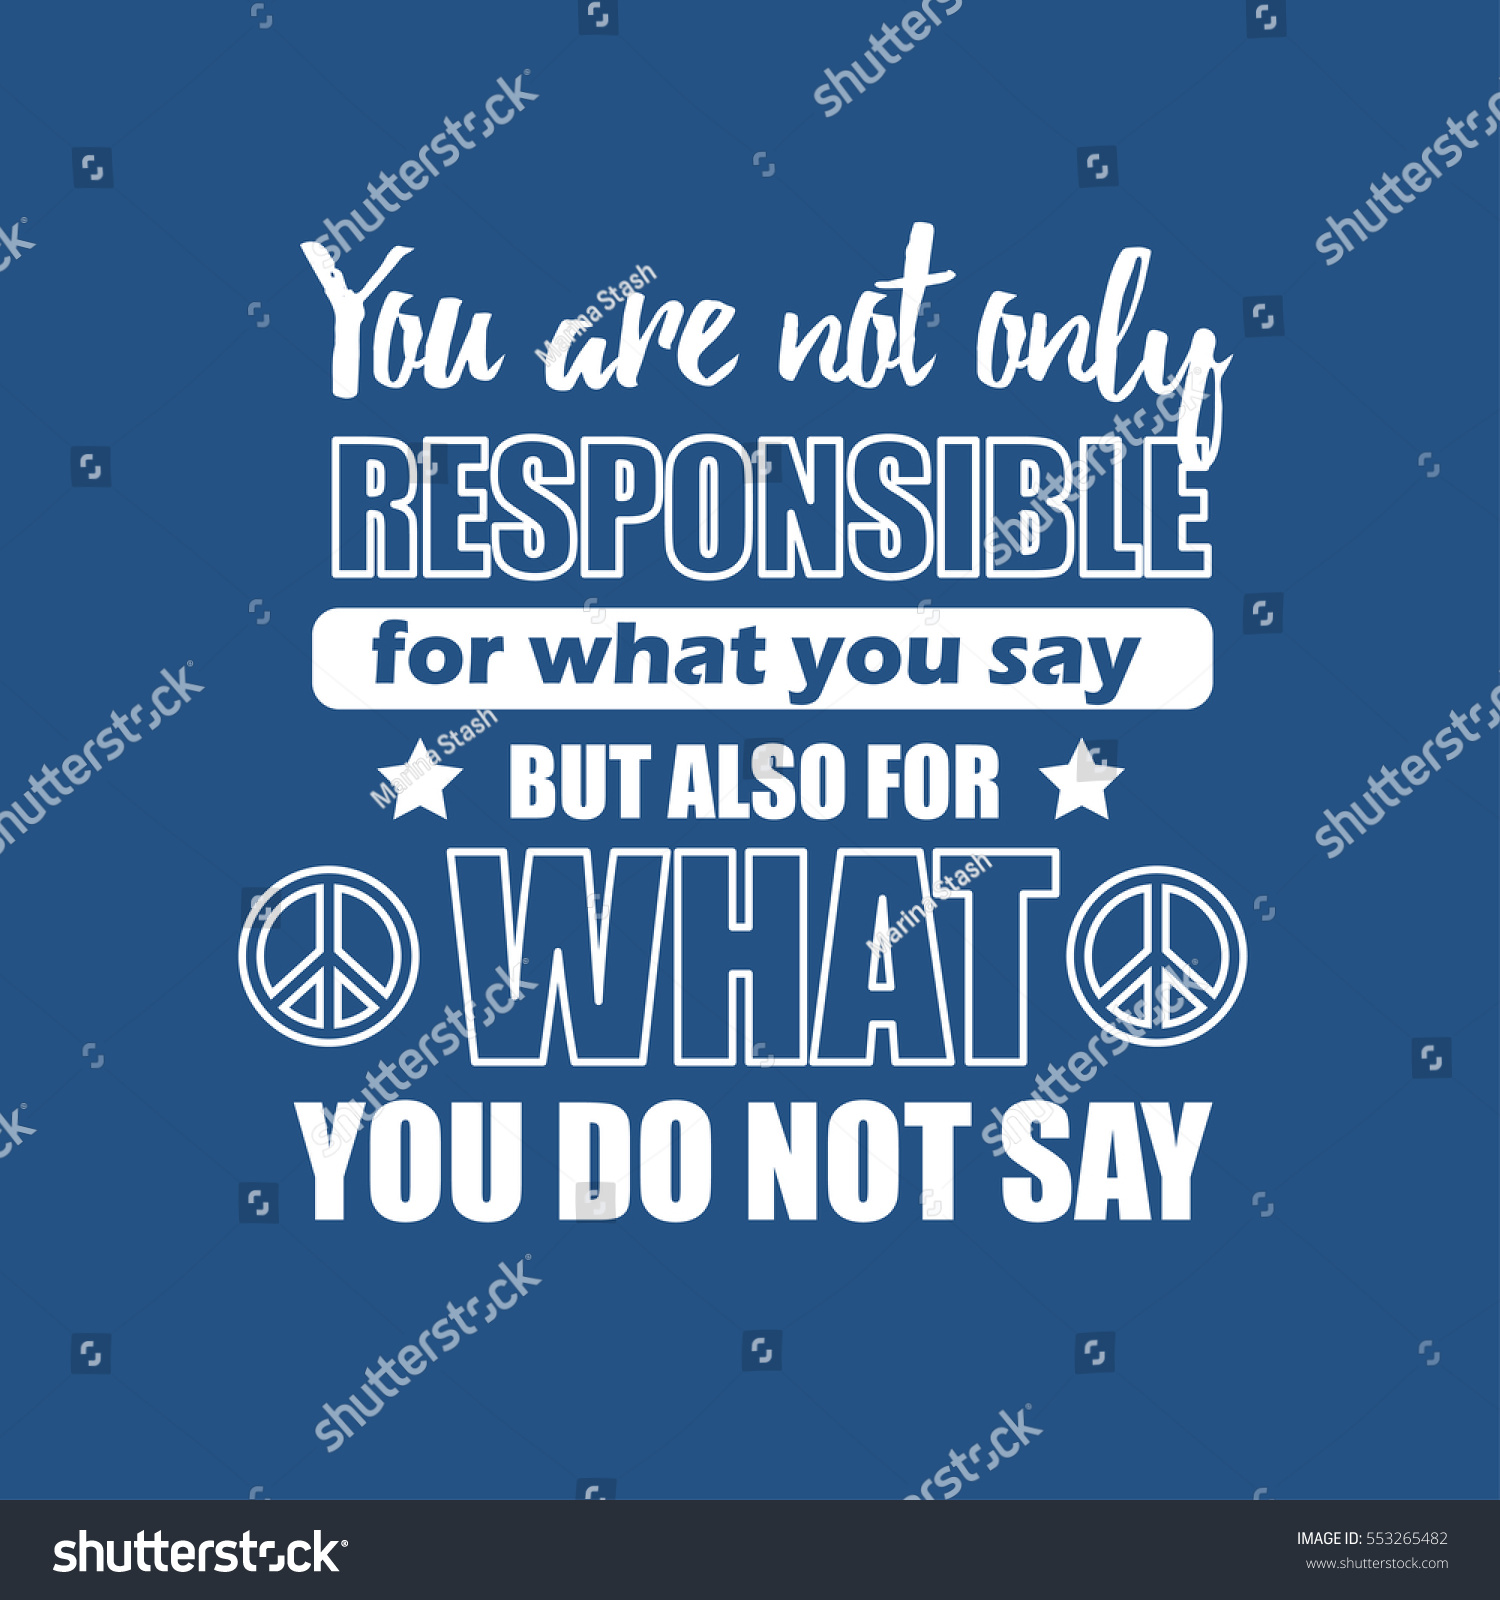 Martin luther king jr day greeting stock vector 553265482 shutterstock martin luther king jr day greeting card background mlk typography lettering quote vector poster kristyandbryce Choice Image